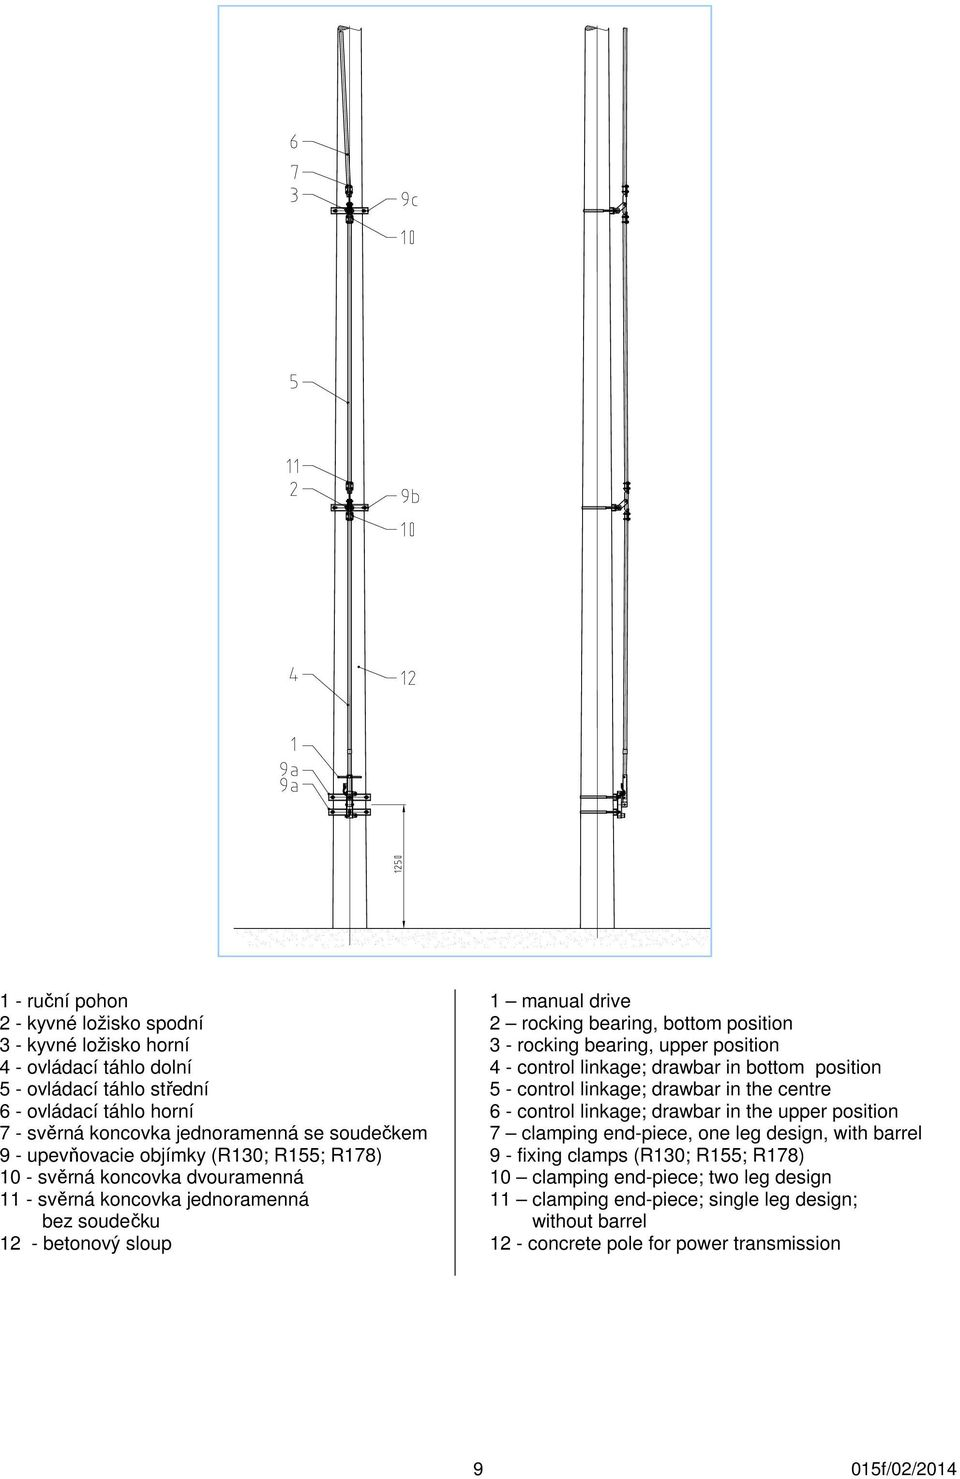 rocking bearing, upper position 4 - control linkage; drawbar in bottom position 5 - control linkage; drawbar in the centre 6 - control linkage; drawbar in the upper position 7 clamping end-piece,